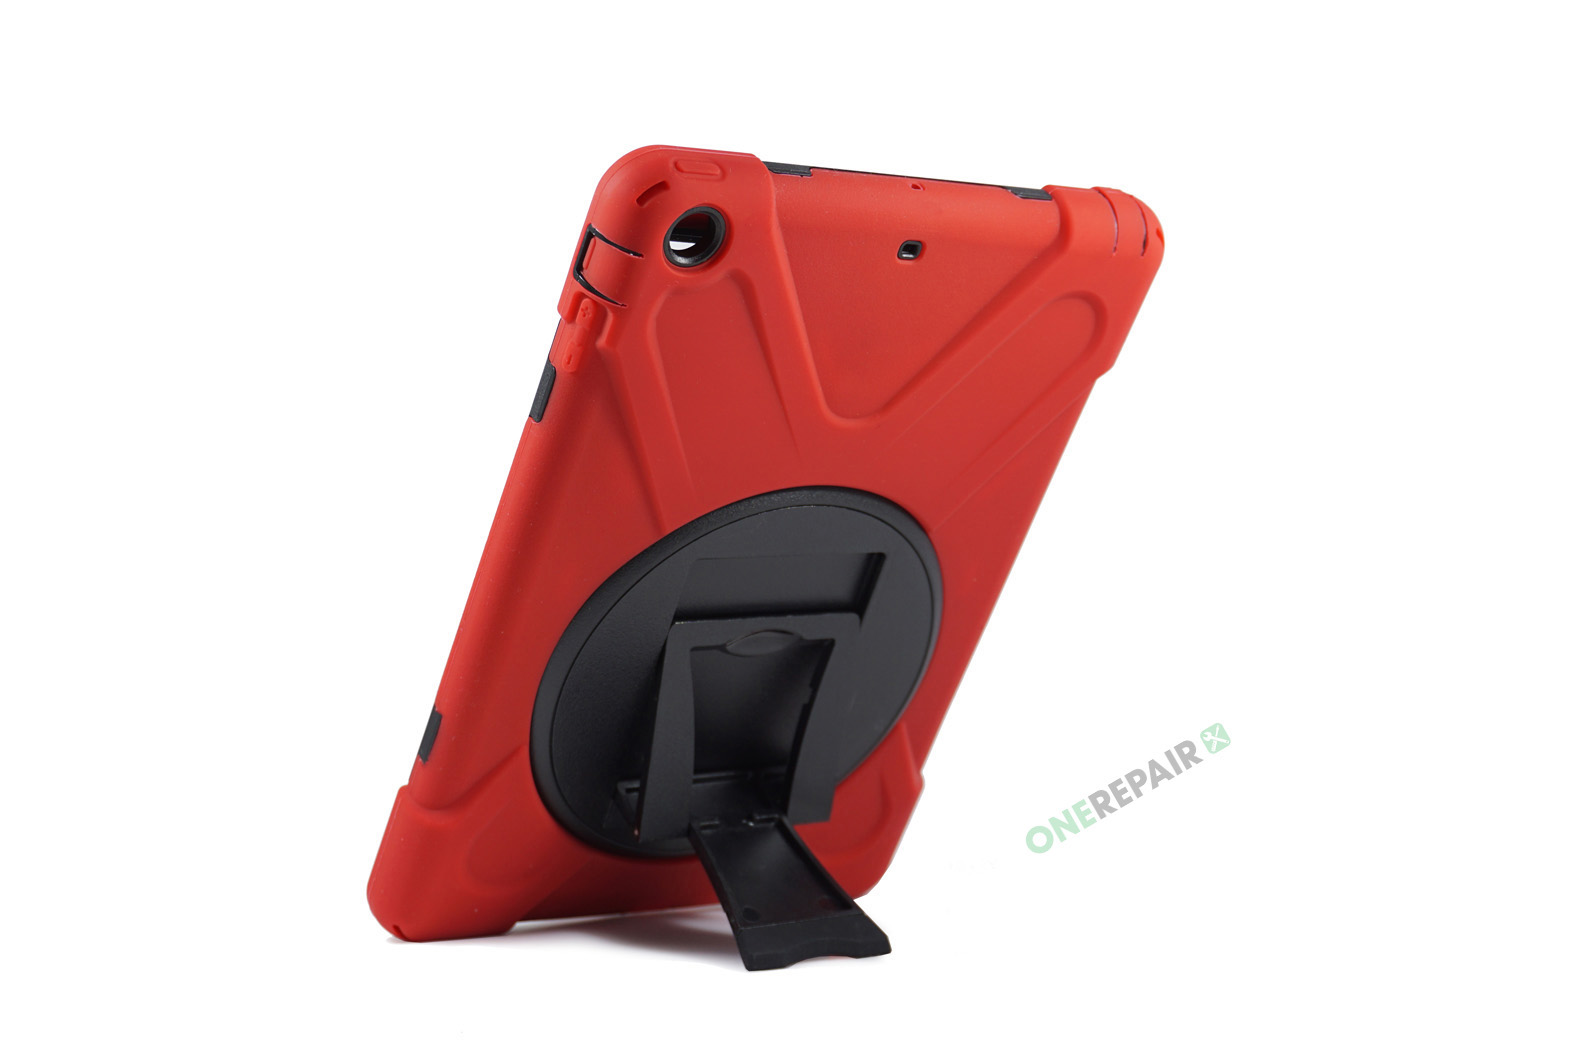 351012_iPad_Air_A1474_A1475_A1476_3-in-1_Boernecover_Børne_Hardcase_Cover_Roed_OneRepair_00004